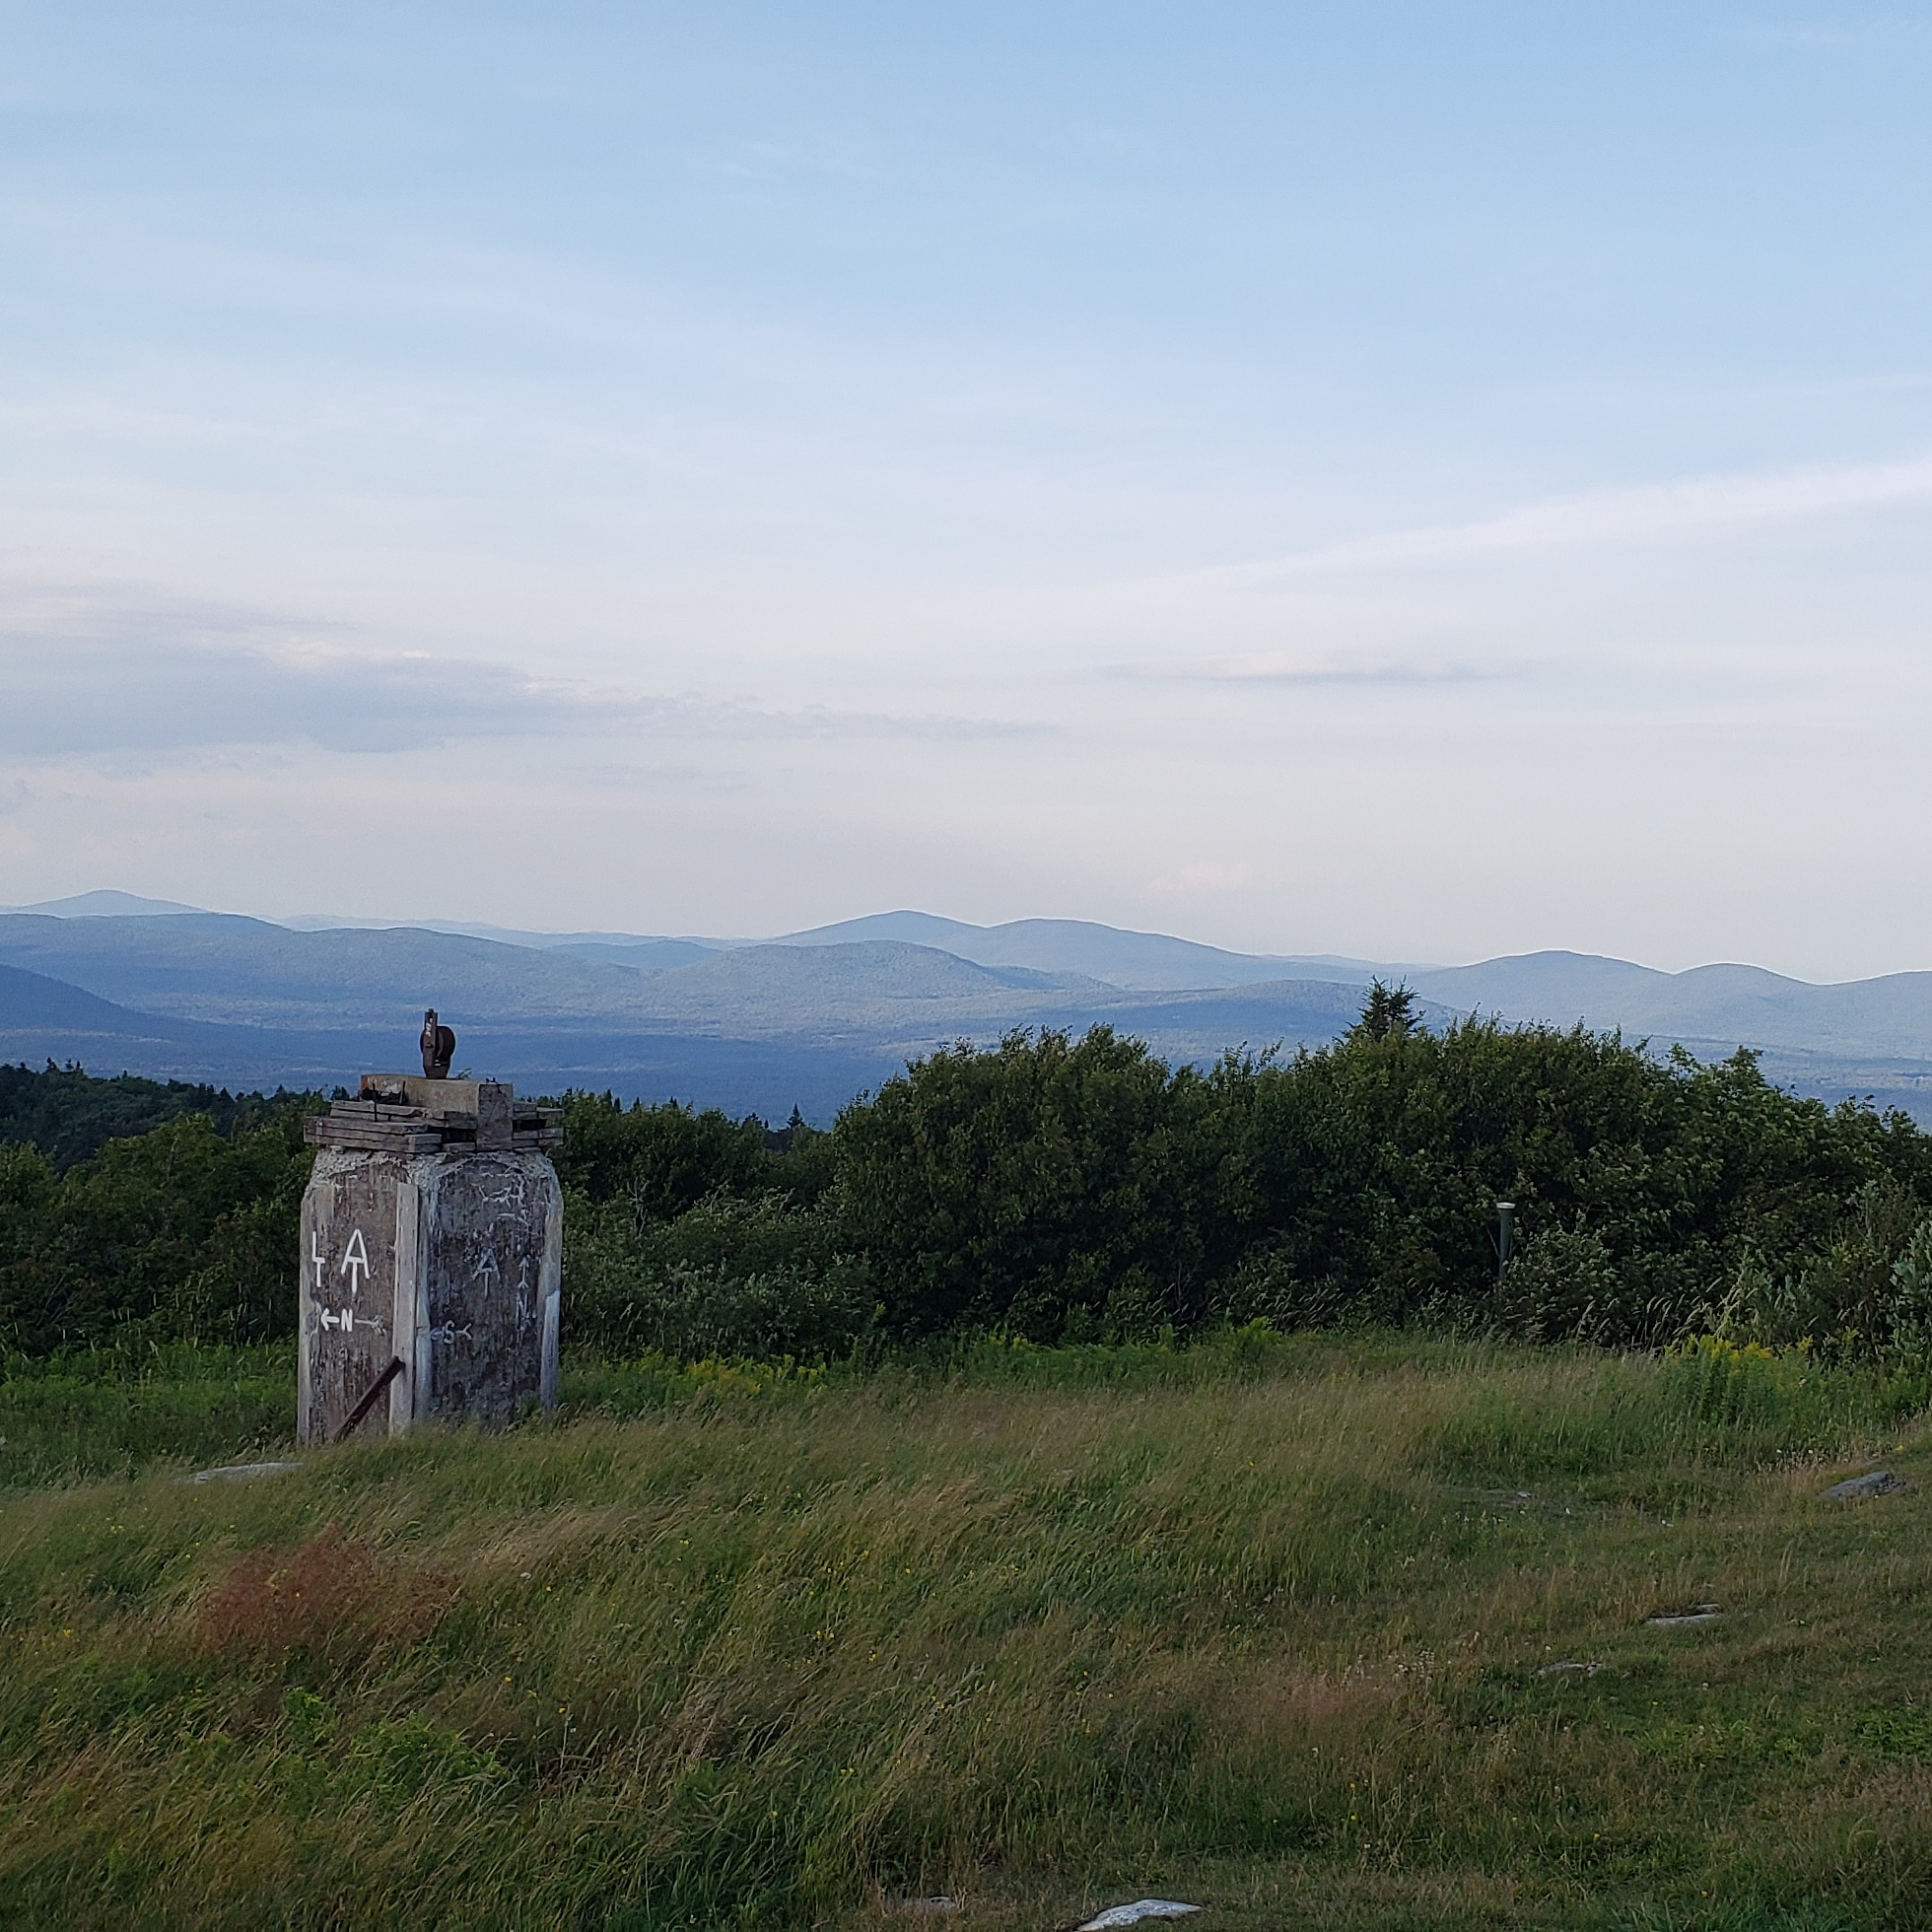 Sunset view off Bromley Mountain. In the foreground is a field of tall grass bent by the wind and an old stone work with LT and AT symbols and white N for North painted on in white.In the background can be seen ranges of mountains pale blue and purple from the light at sunset.